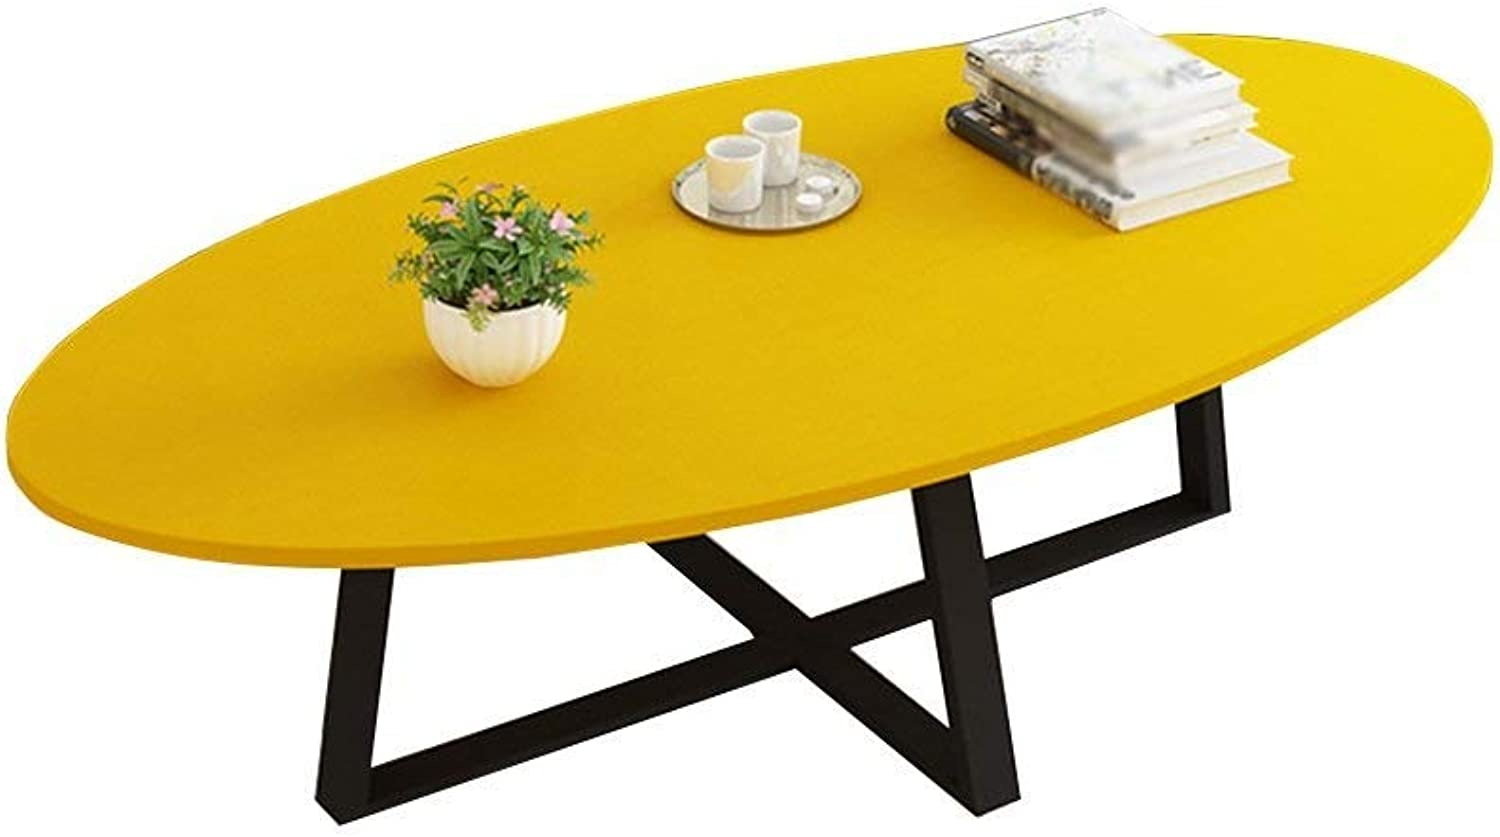 Creative Table Solid Wood Living Room Small Coffee Table Modern Minimalist Multi-Function Side Table Office Computer Desk, 6 colors Optional == (color   Yellow)